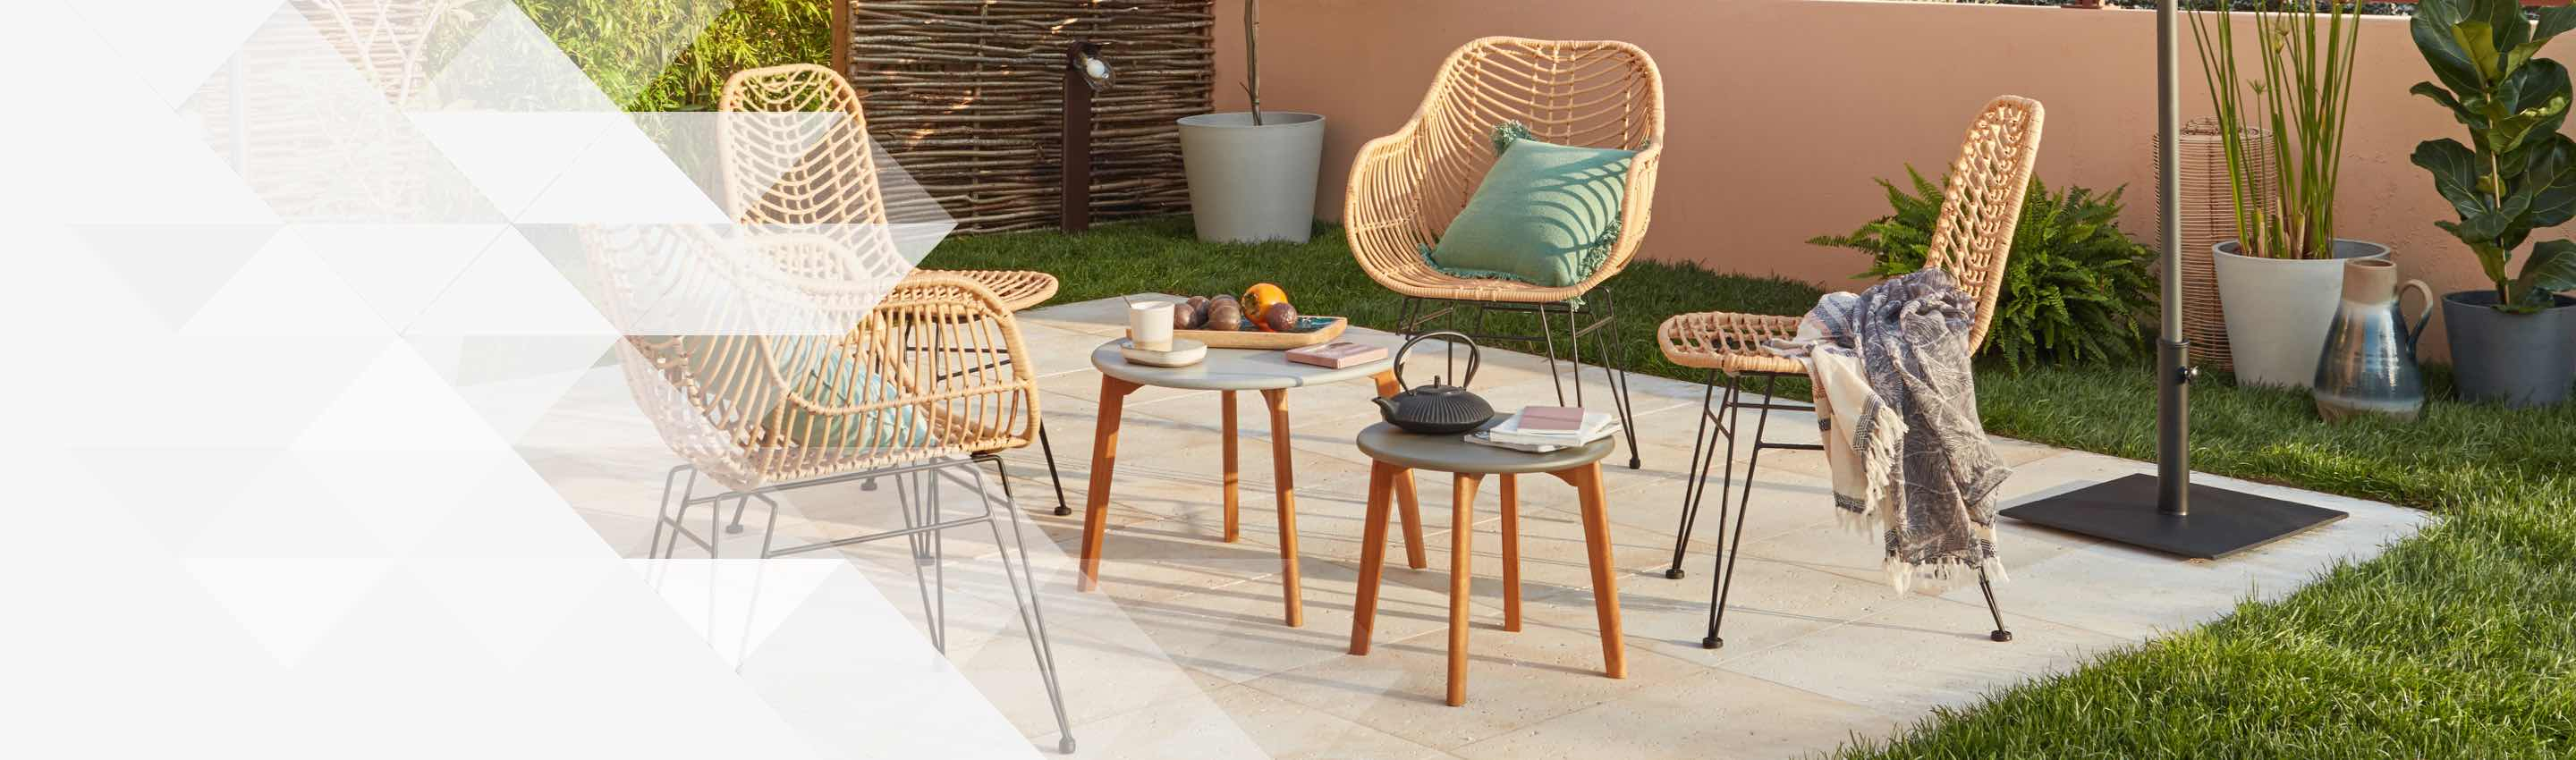 Salon Rotin Exterieur Salon De Jardin Table Et Chaise Mobilier De Jardin Leroy Merlin